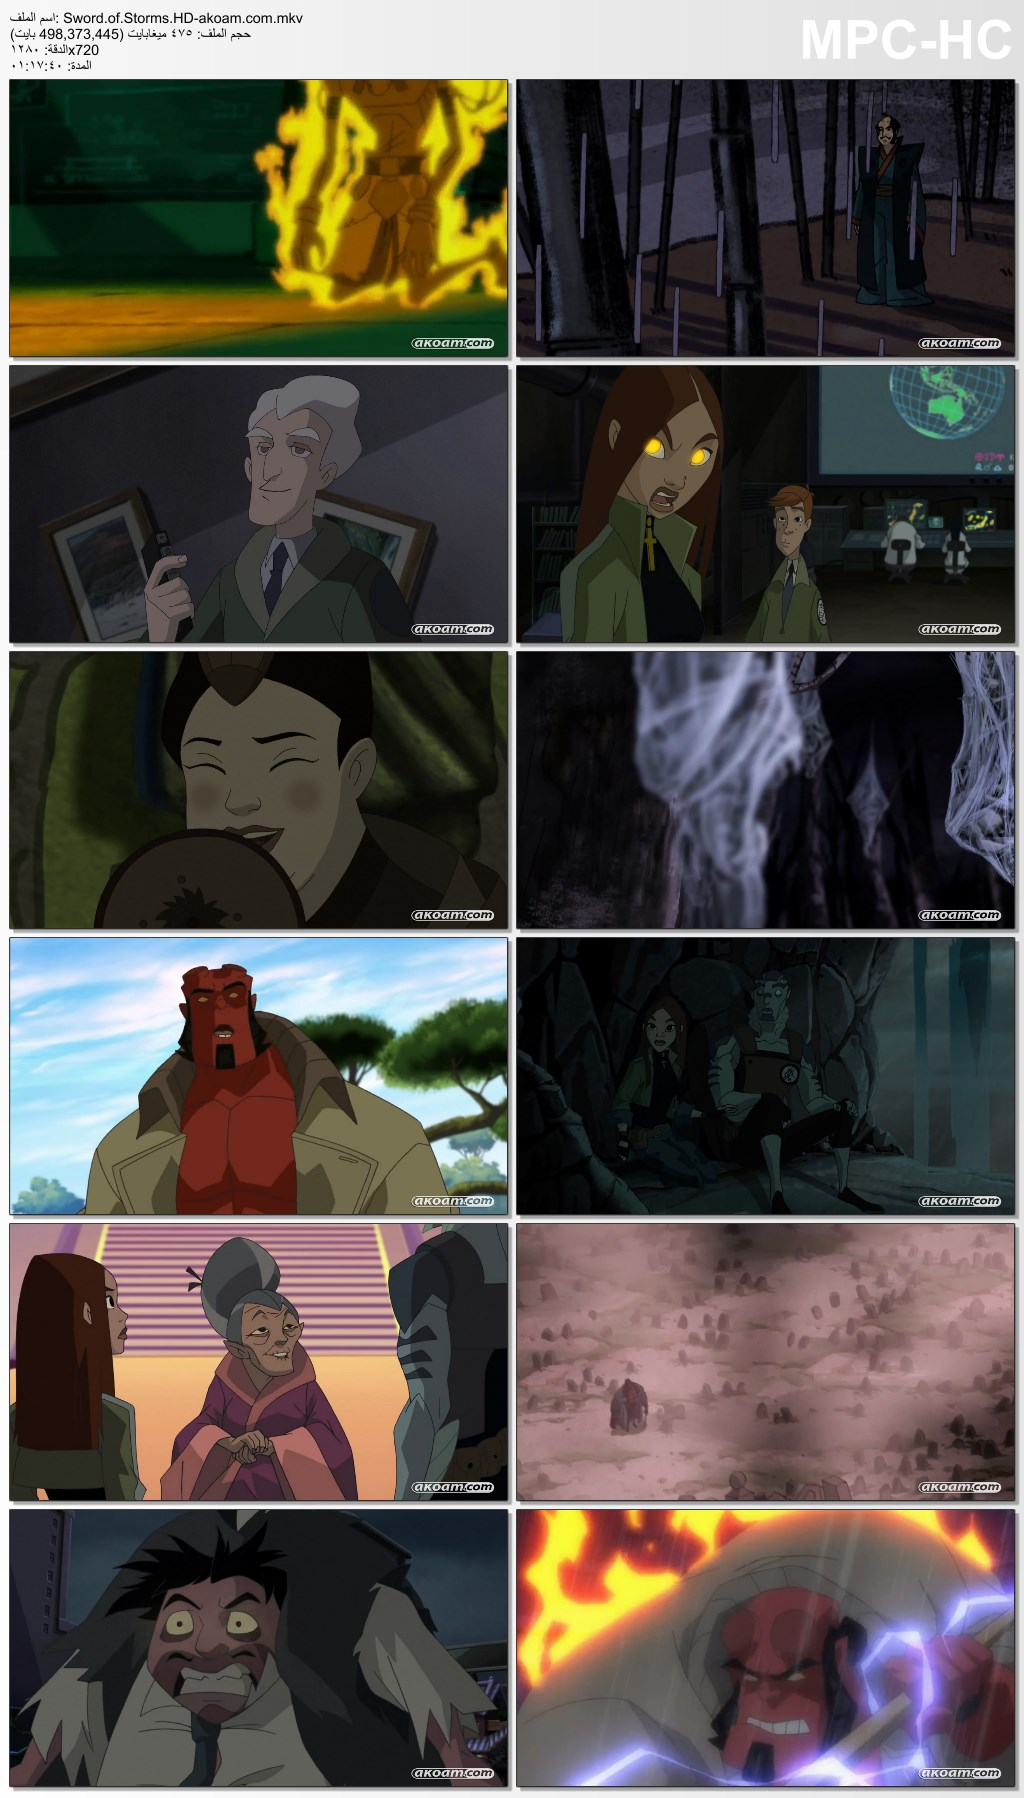 Hellboy Animated: Sword of Storms,فيلم Hellboy Animated: Sword of Storms,انمي Hellboy Animated: Sword of Storms,Hellboy Animated: Sword of Storms مدبلج,فيلم عاصفة السيوف